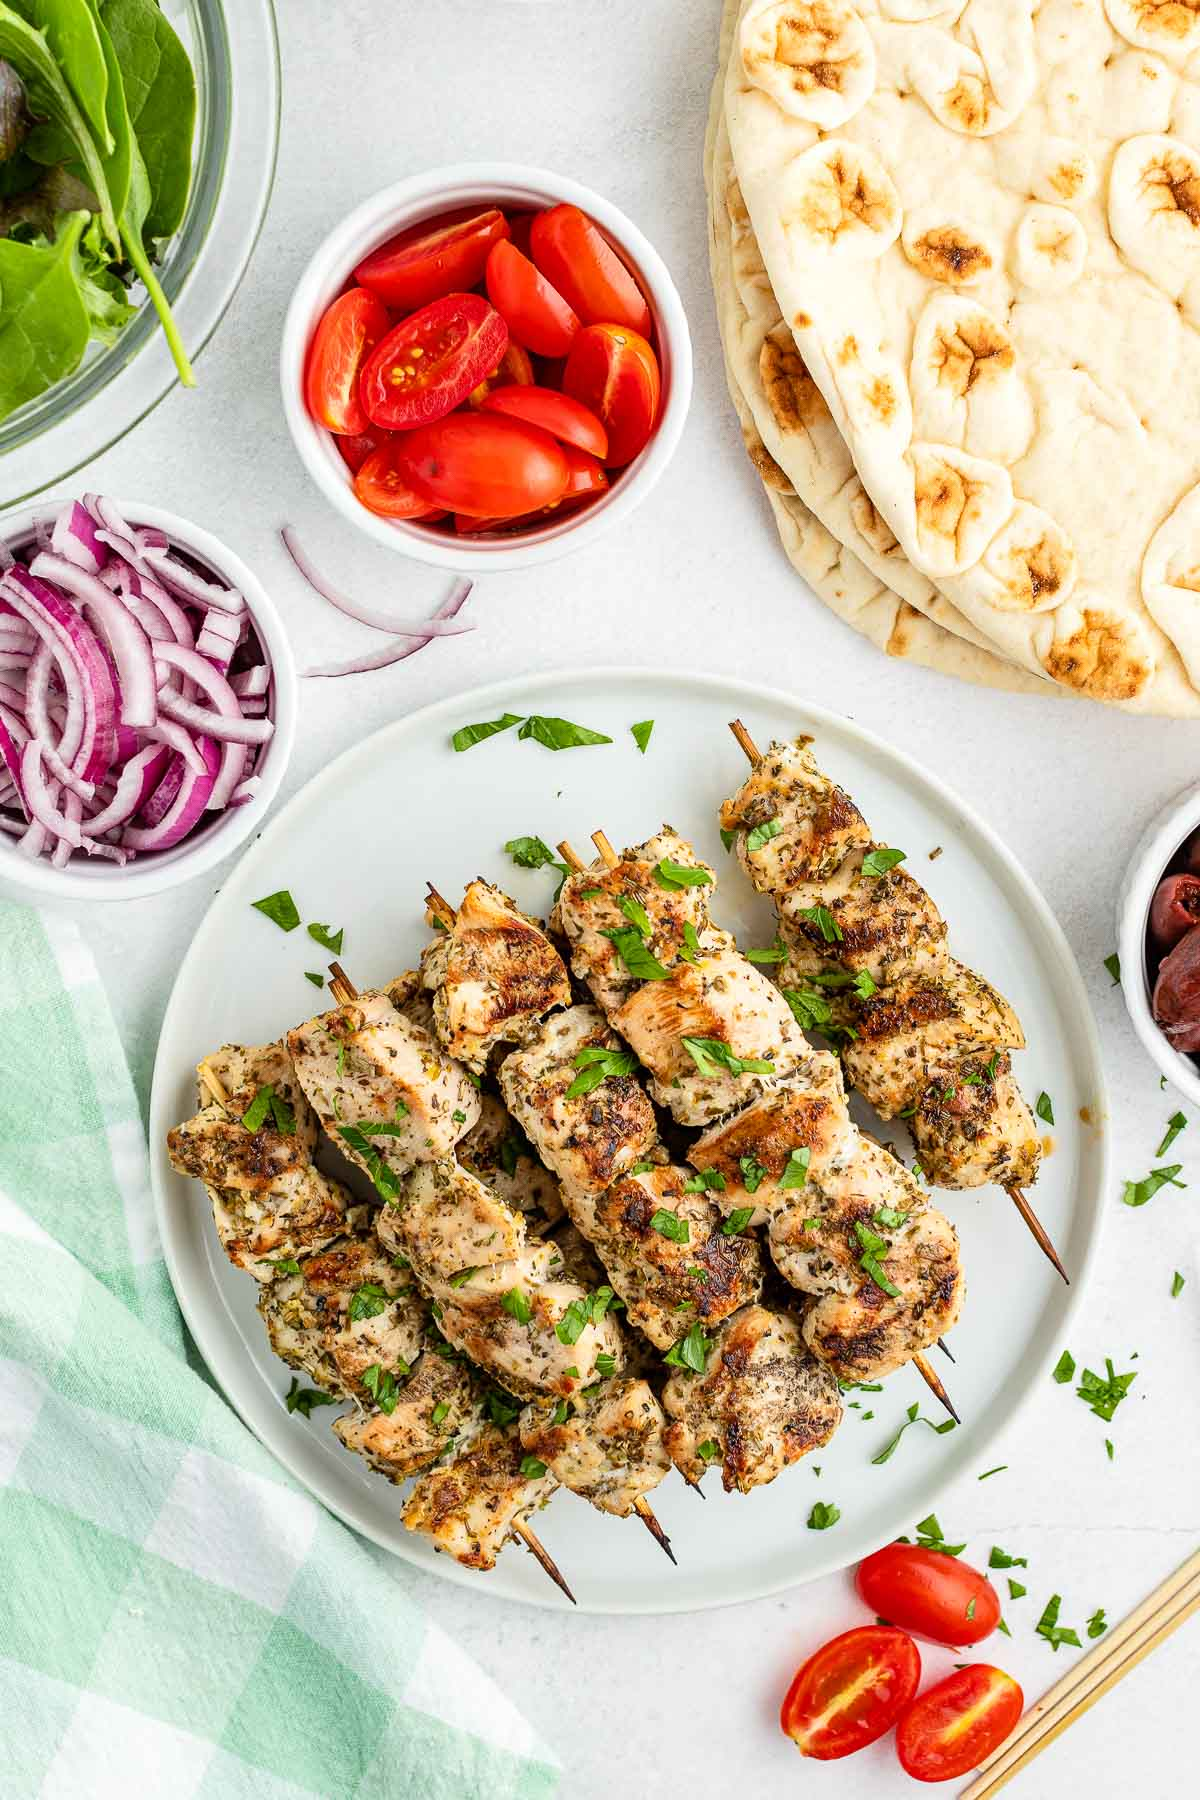 grilled chicken souvlaki skweres on a plate surrounded by containers of prepared vegetable and flatbread